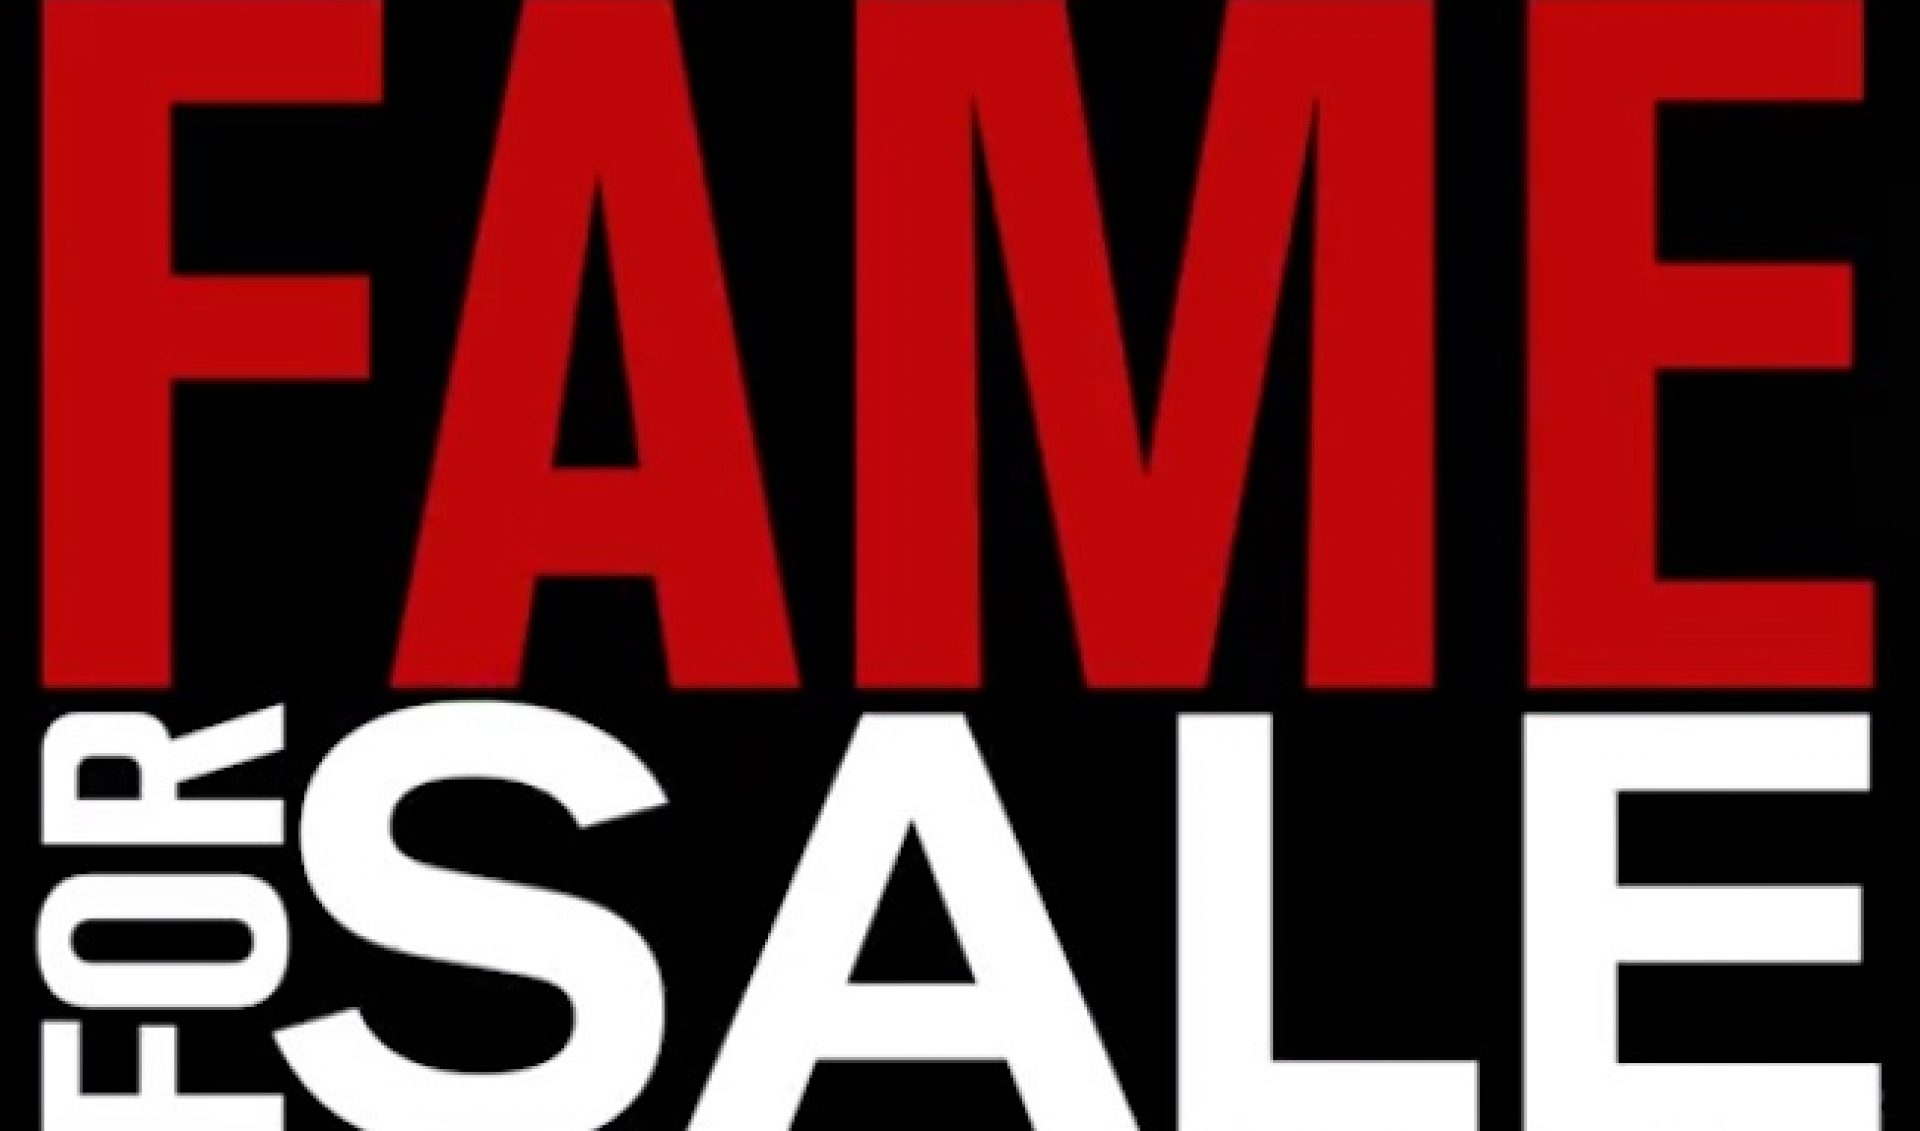 On The Internet, Is Fame For Sale?